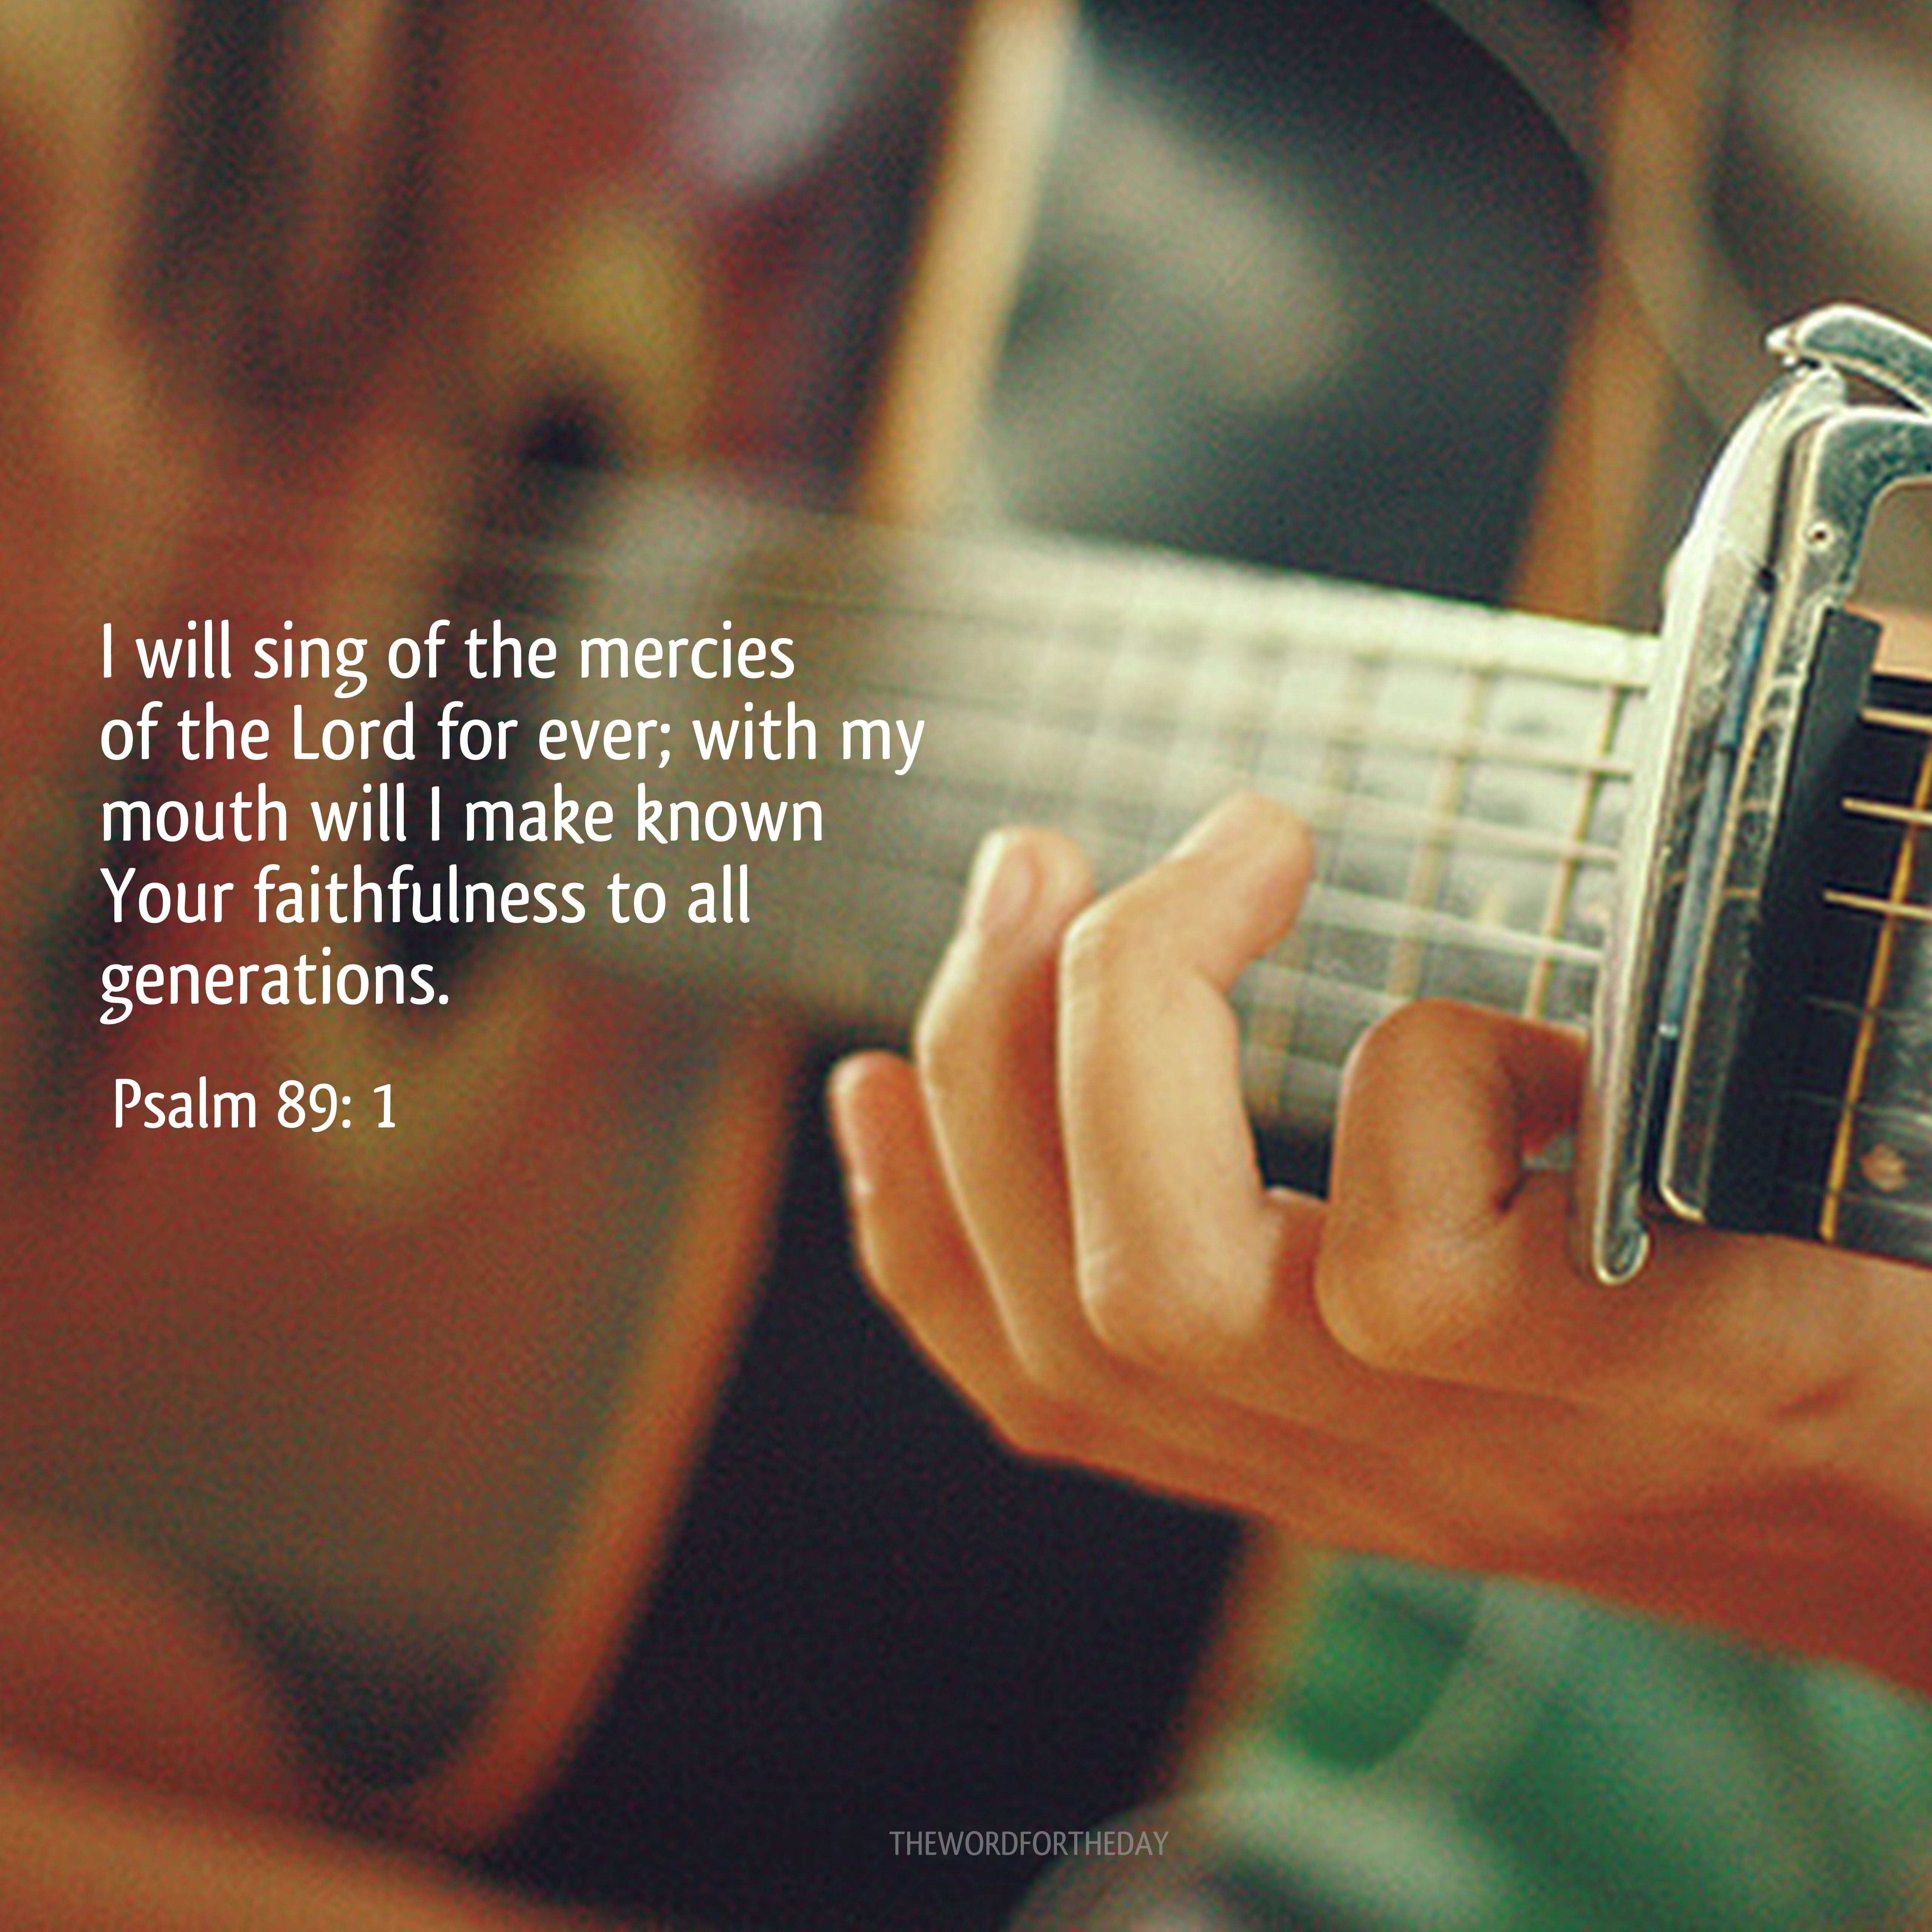 Acoustic Guitar Wallpaper For Facebook Cover With Quotes: GUITAR, BIBLE VERSE, BIBLE QUOTE, THE WORD FOR THE DAY